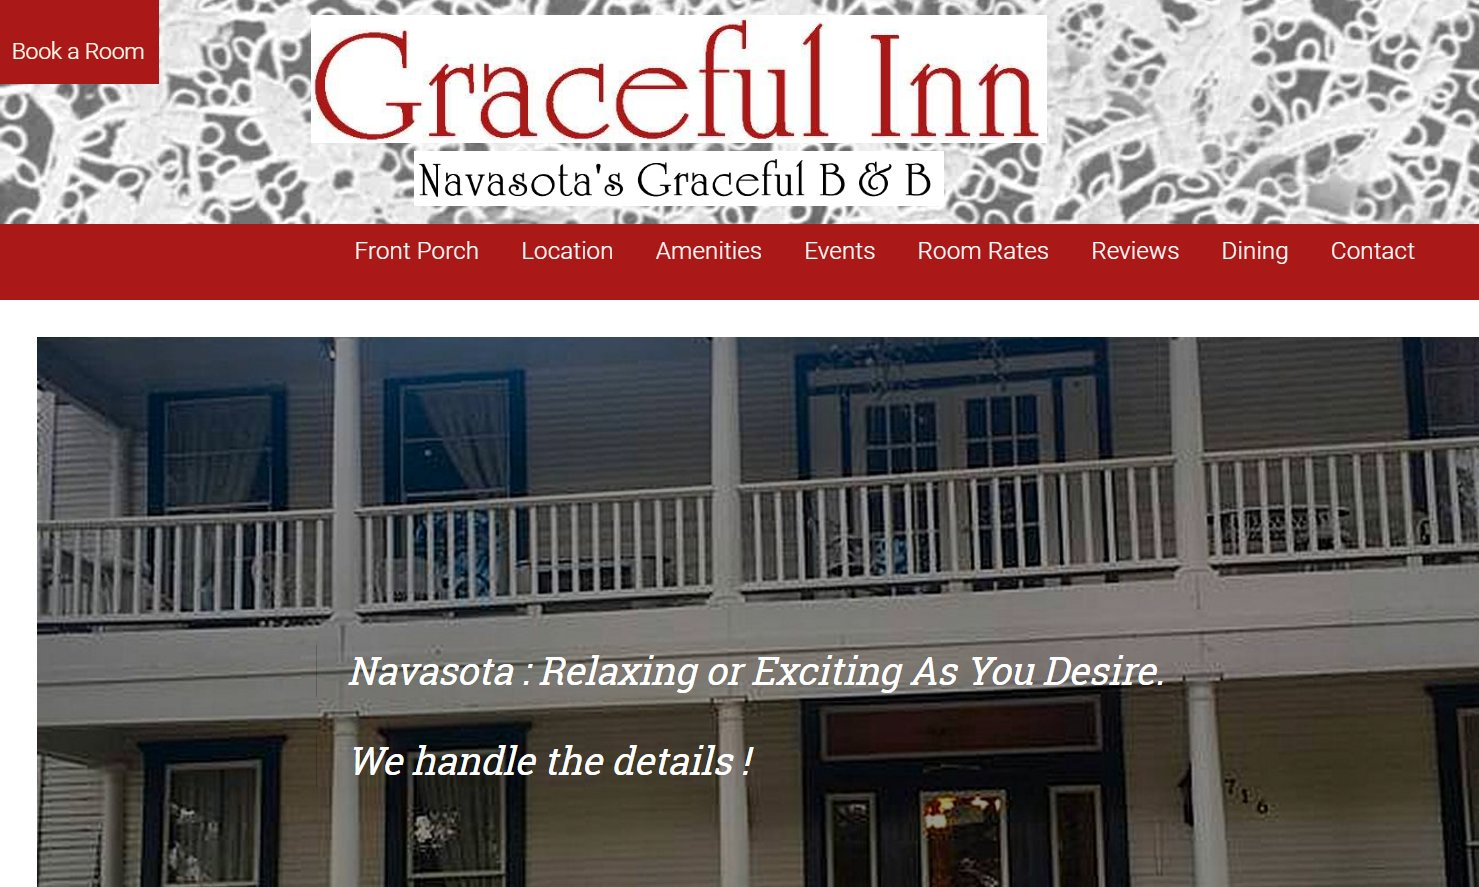 Graceful Inn